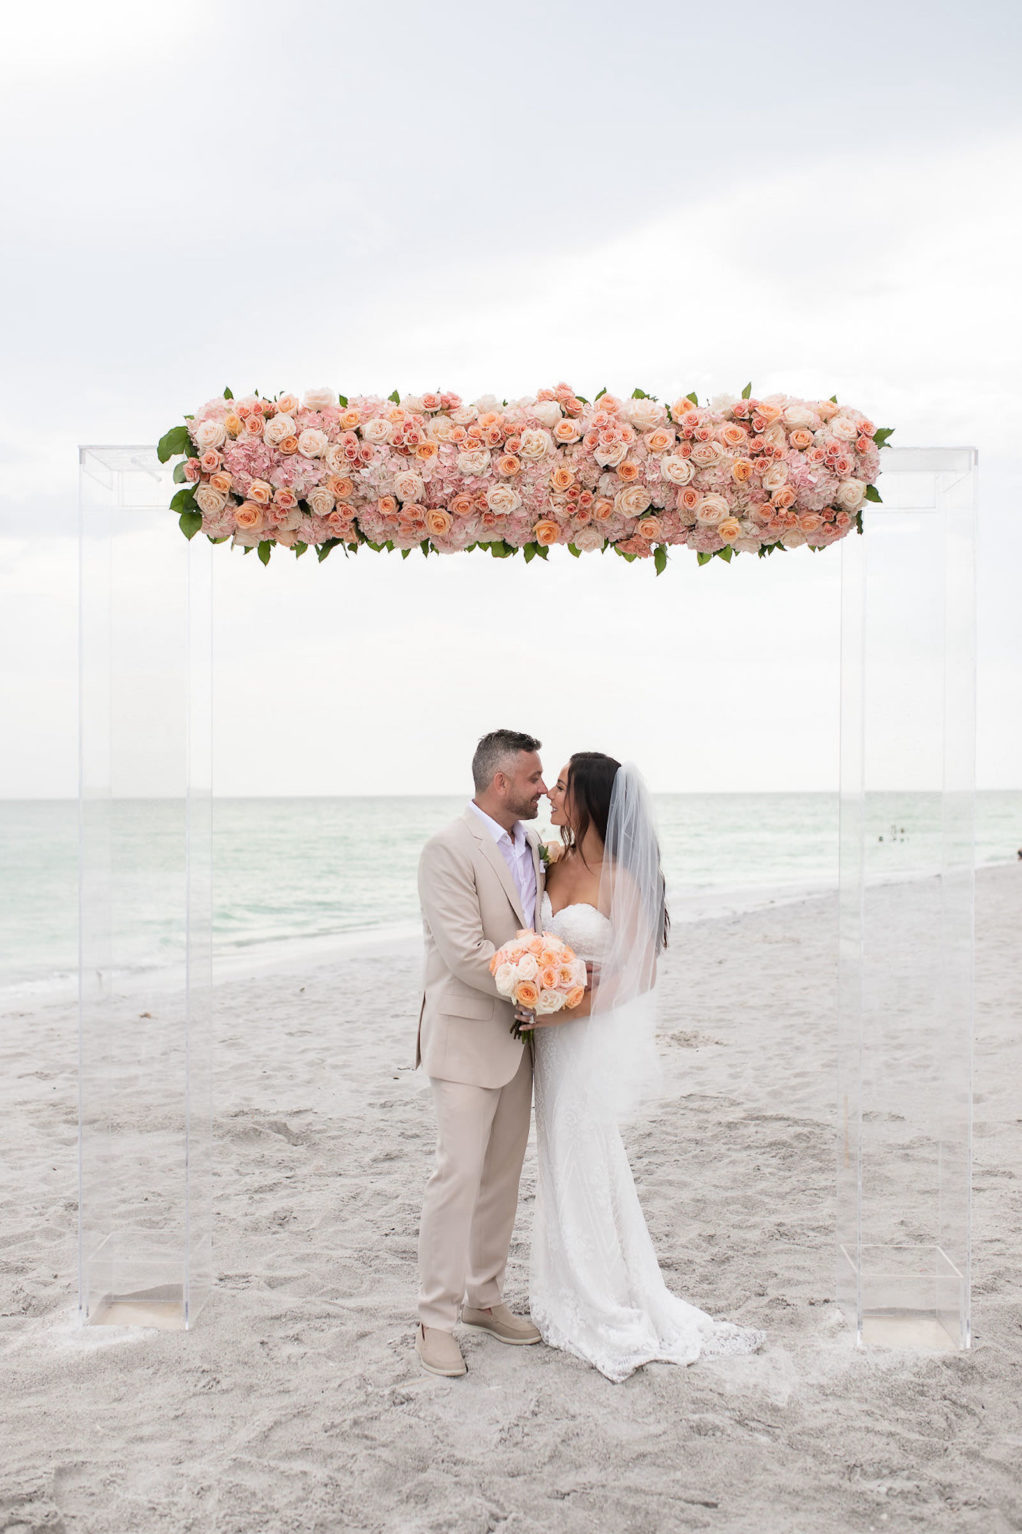 Outdoor Bride and Groom Portrait at Florida Beach Wedding at Sarasota Wedding Venue The Resort at Longboat Key Club | Ceremony Backdrop with Clear Acrylic Arch and Floral Arrangement of Peach Pink and Coral Roses | Bride Wearing Strapless Sheath Wedding Gown by Tara Keilly | Groom Wearing Casual Khaki Suit